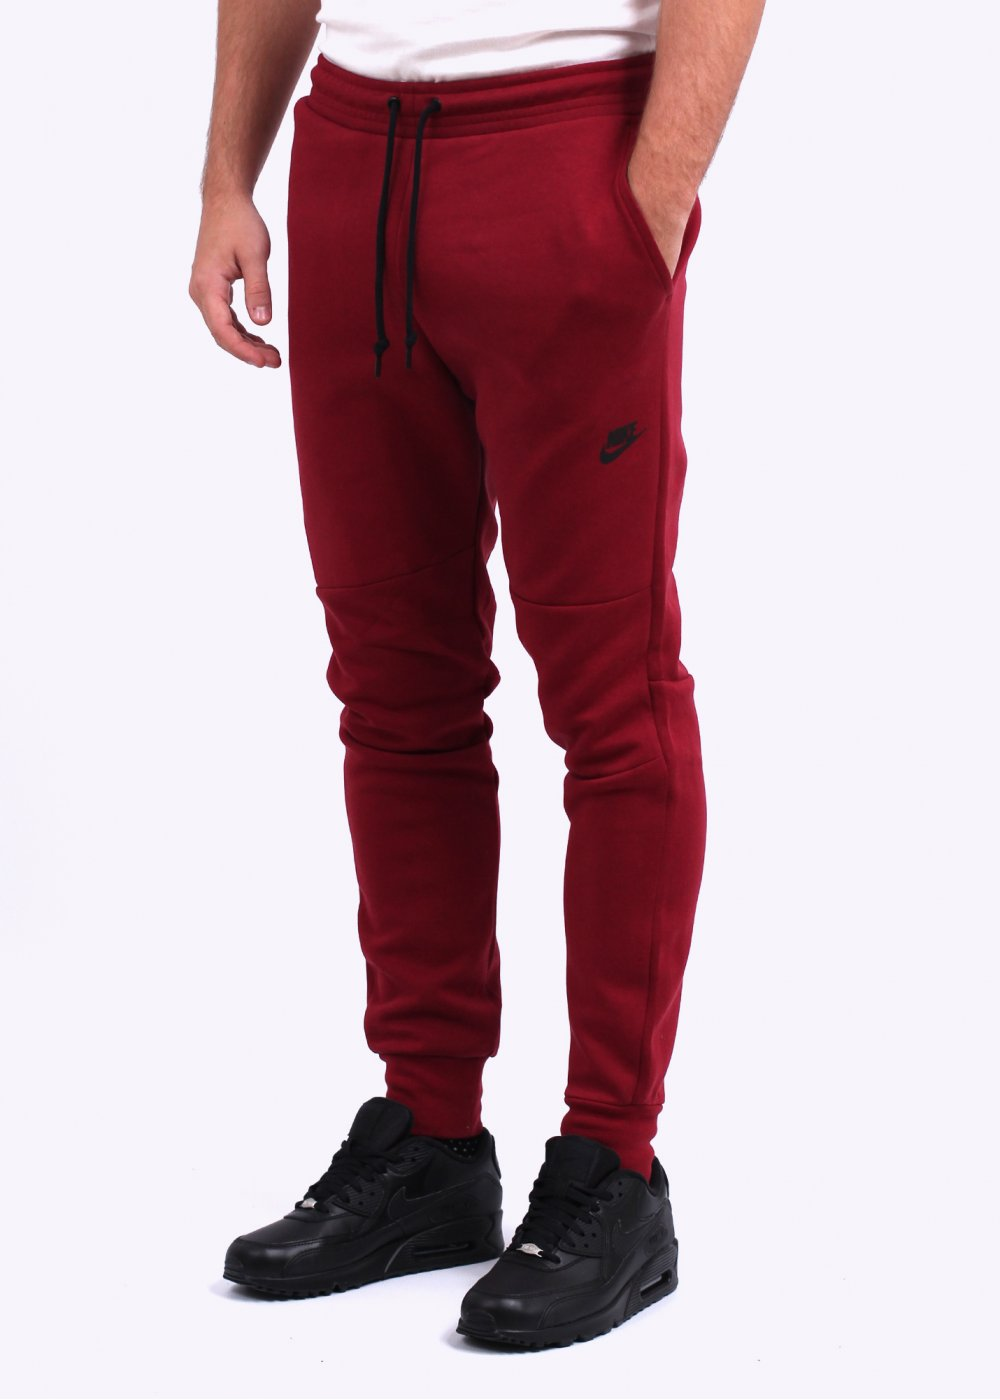 d61e1753 Nike Tech Fleece Pant - Burgundy